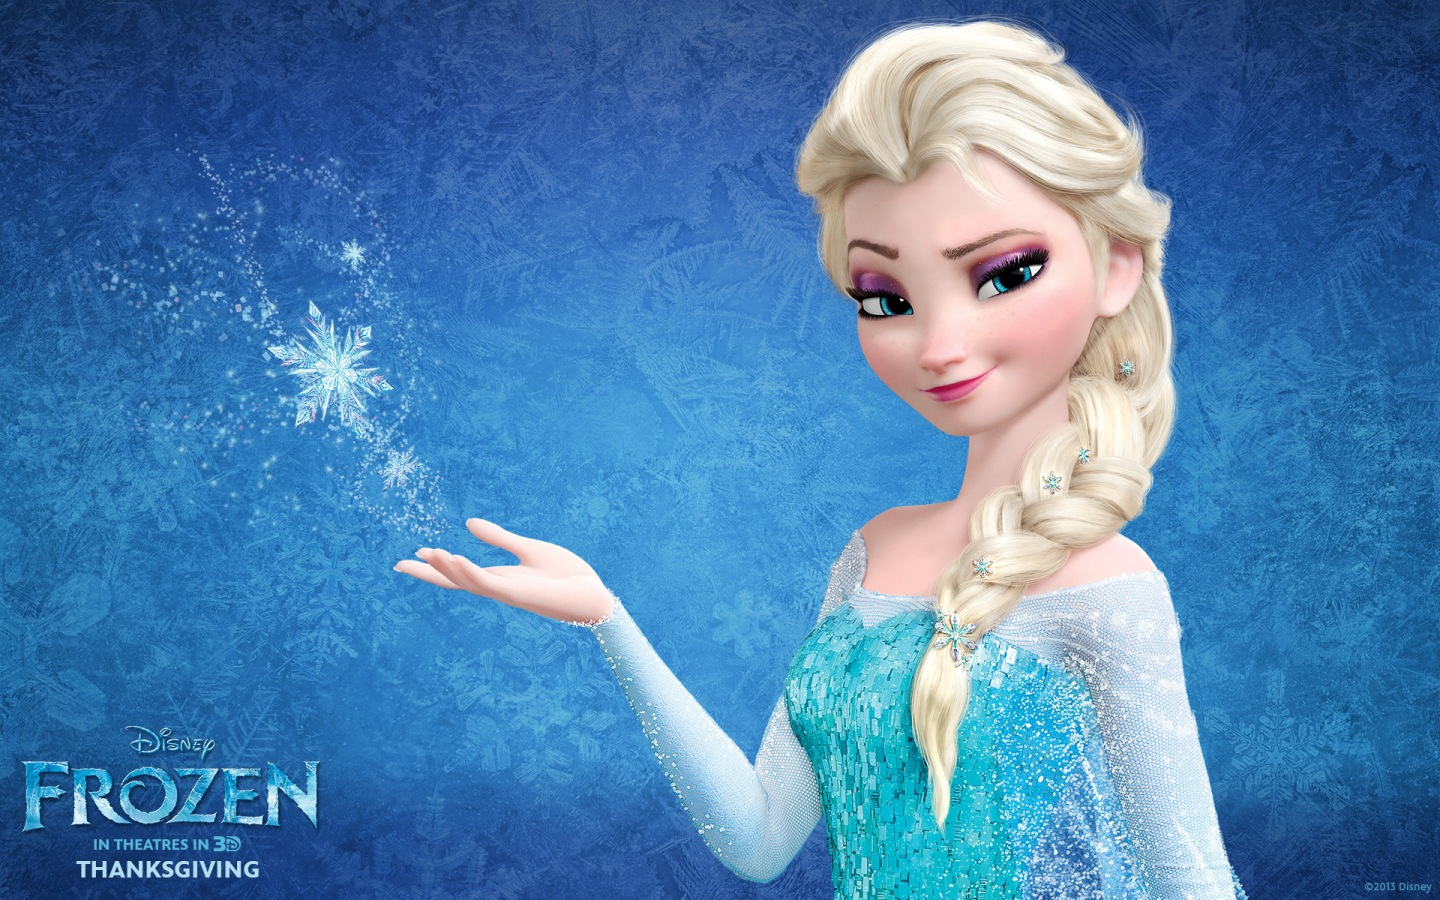 Queen Elsa in Disney's Frozen